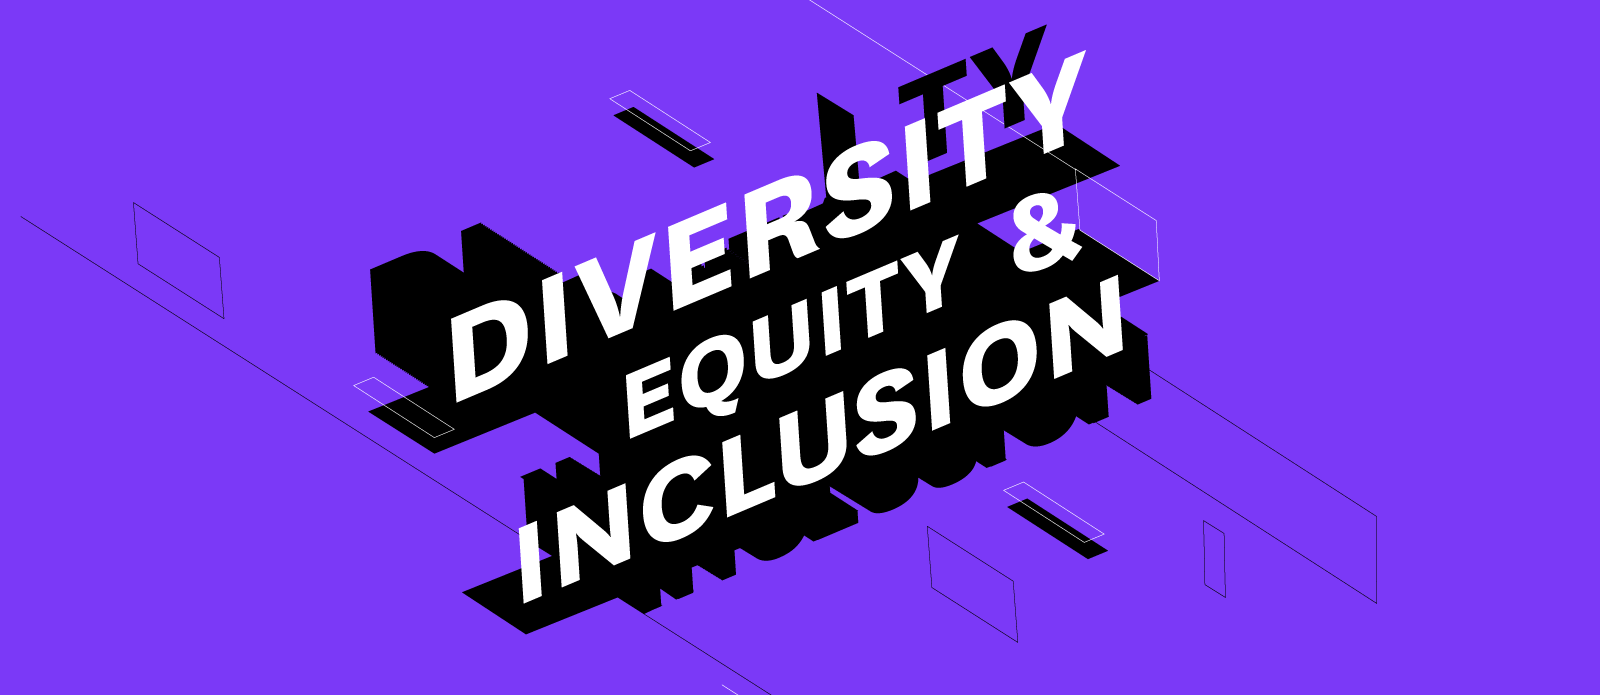 Diversity, Equity, and Inclusion in Higher Education